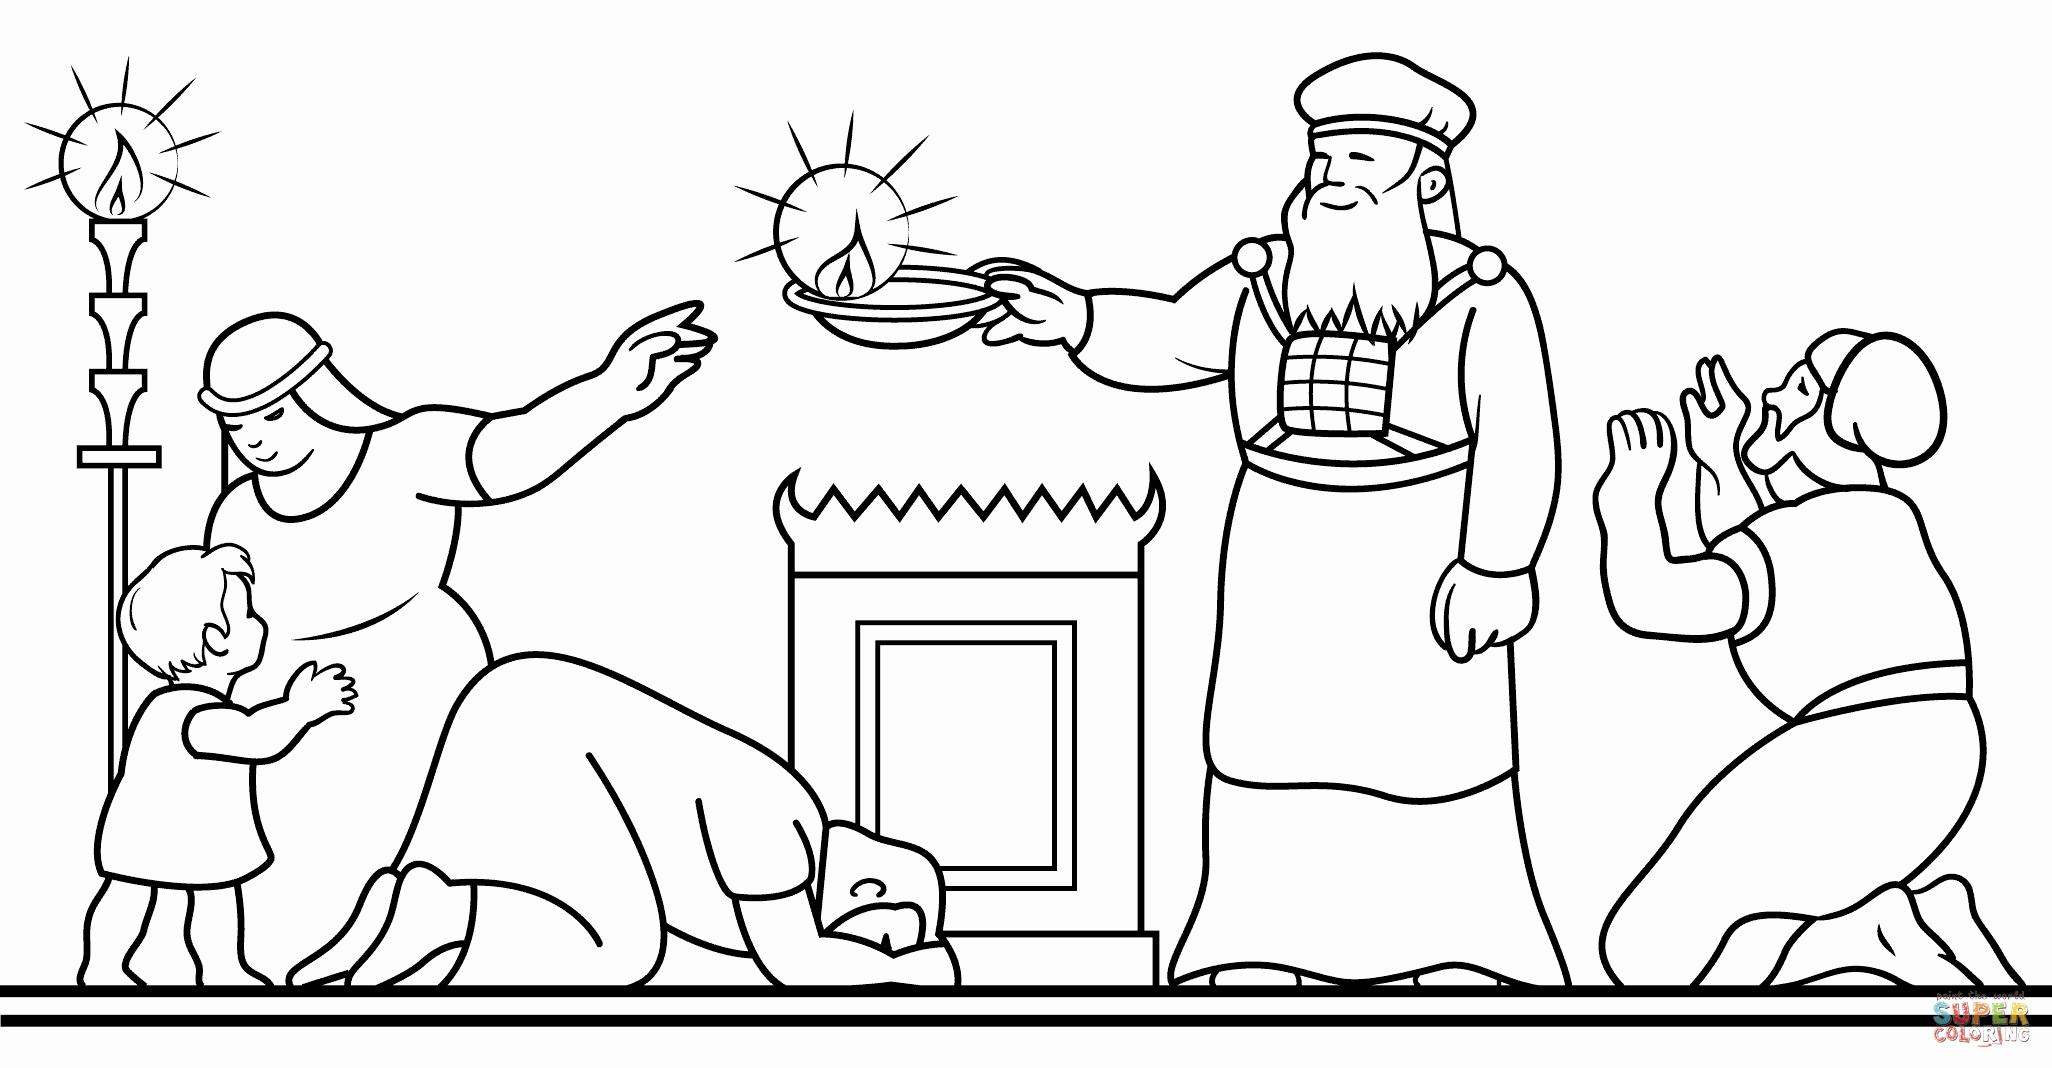 The Best Free Hanukkah Coloring Page Images Download From 404